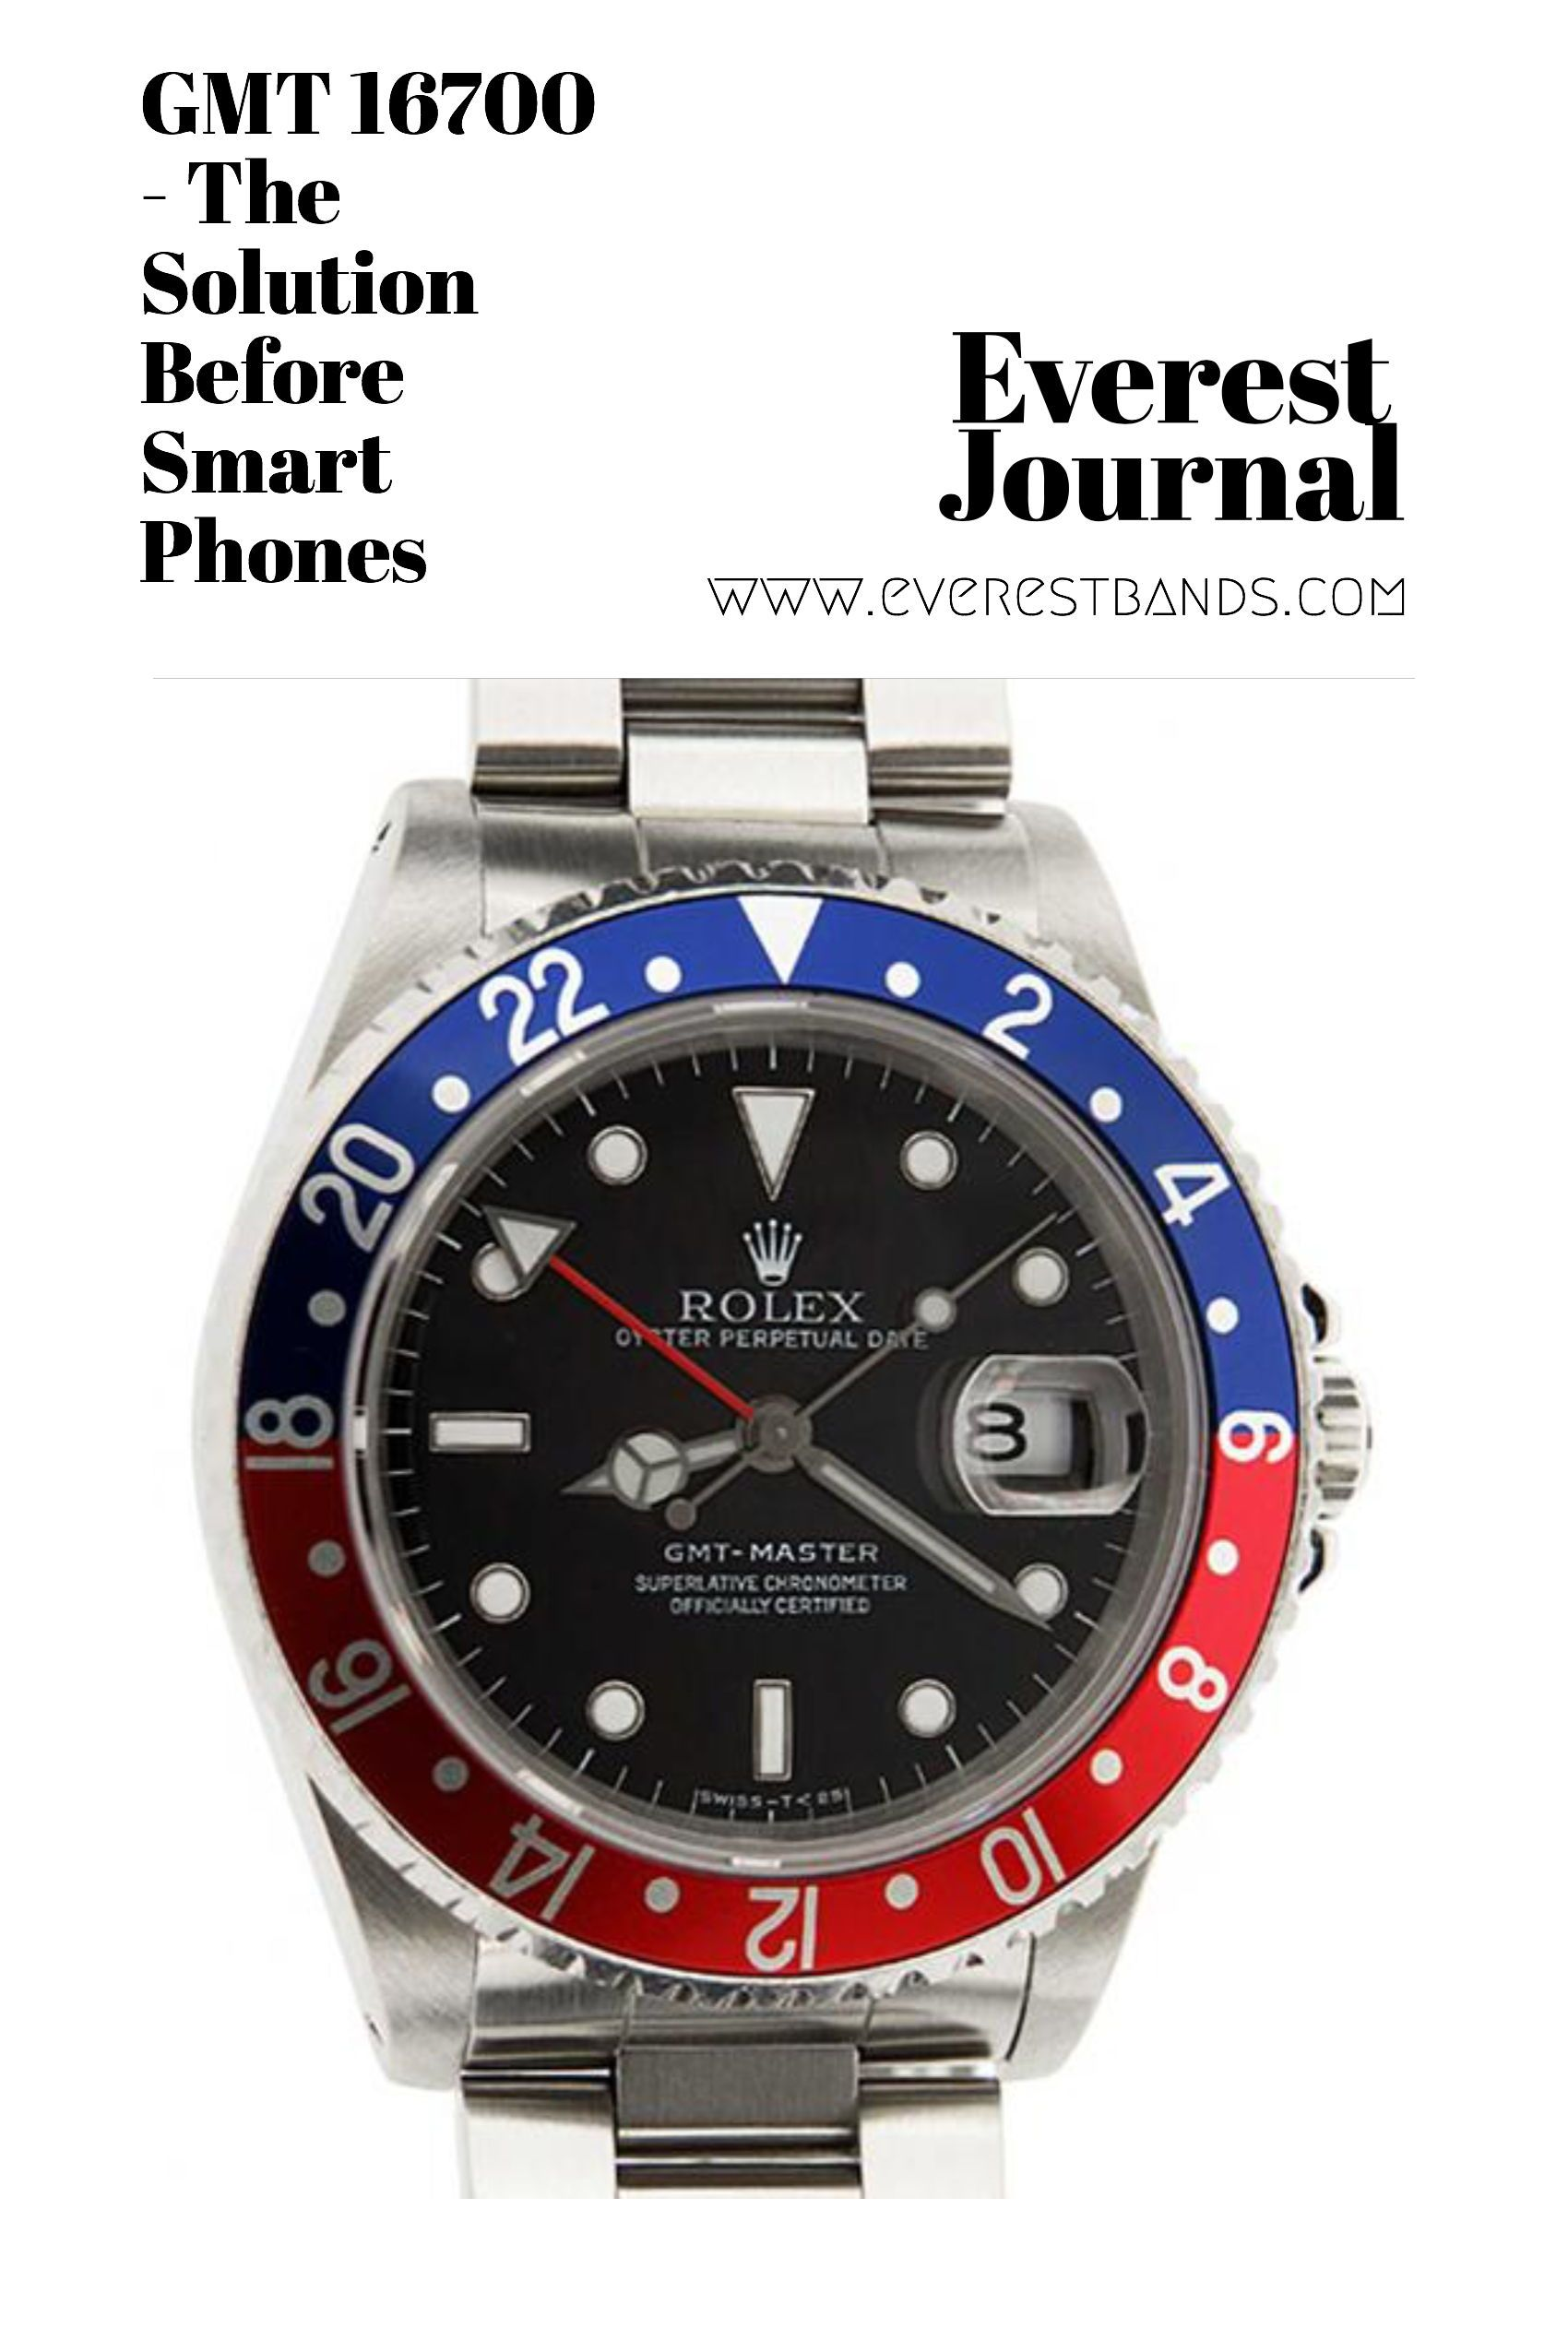 Gmt 16700 The Solution Before Smart Phones Rolex Gmt Gmt Solutions